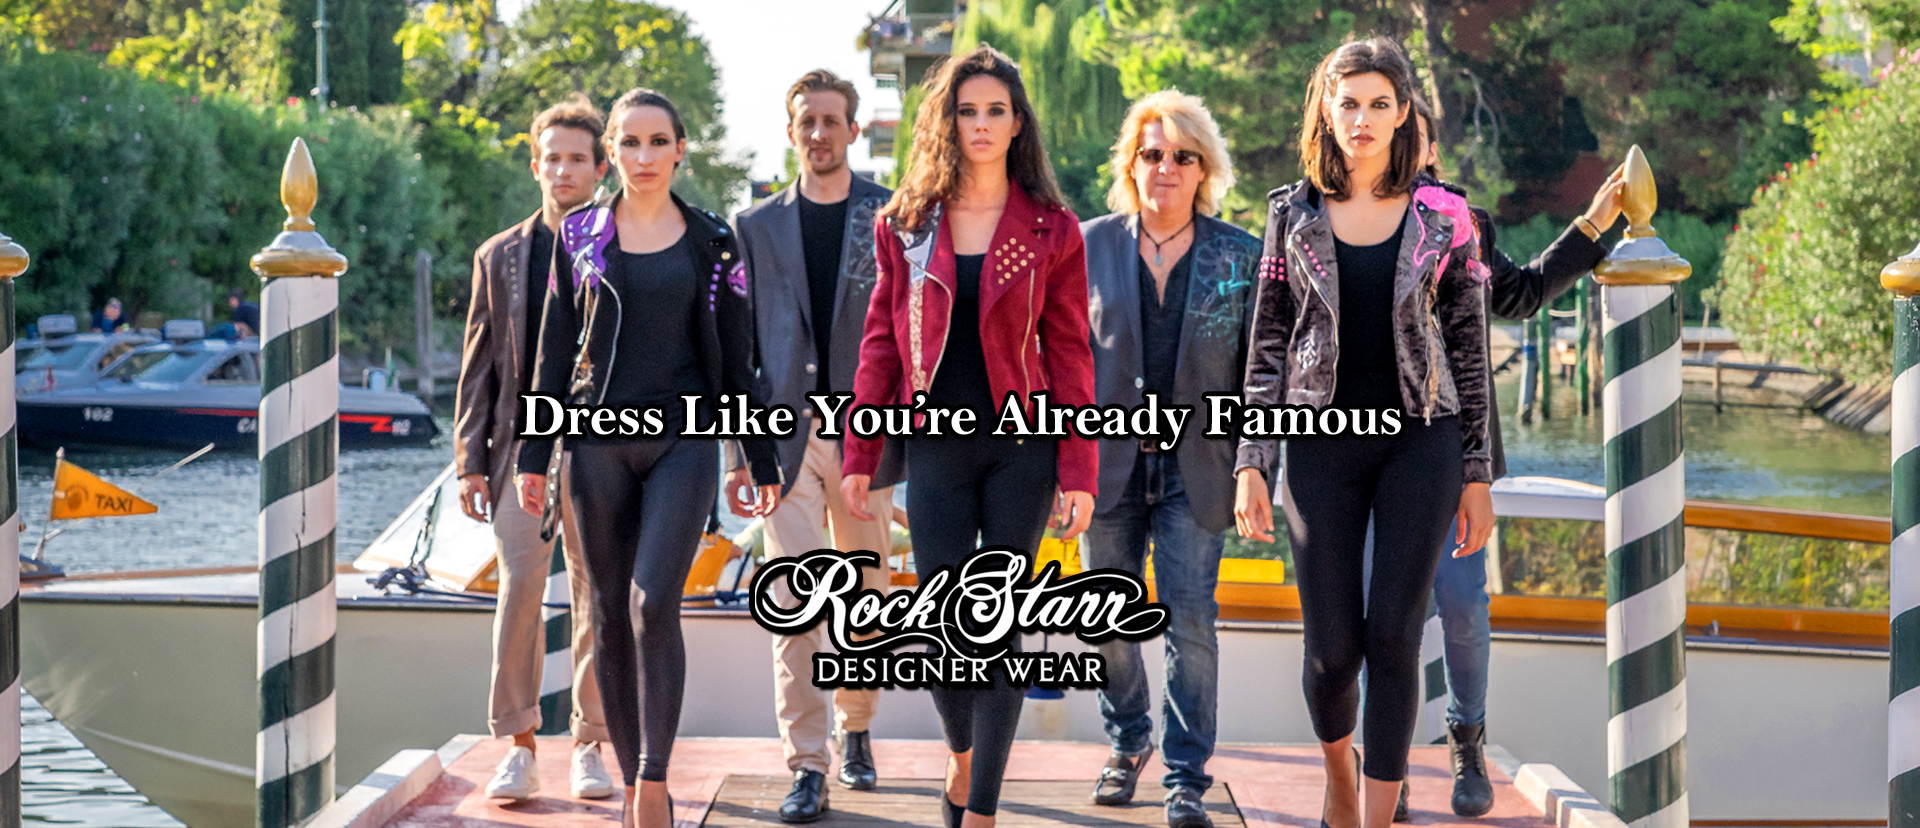 RockStarr Designer Wear David Starr Rock n Roll Fashions